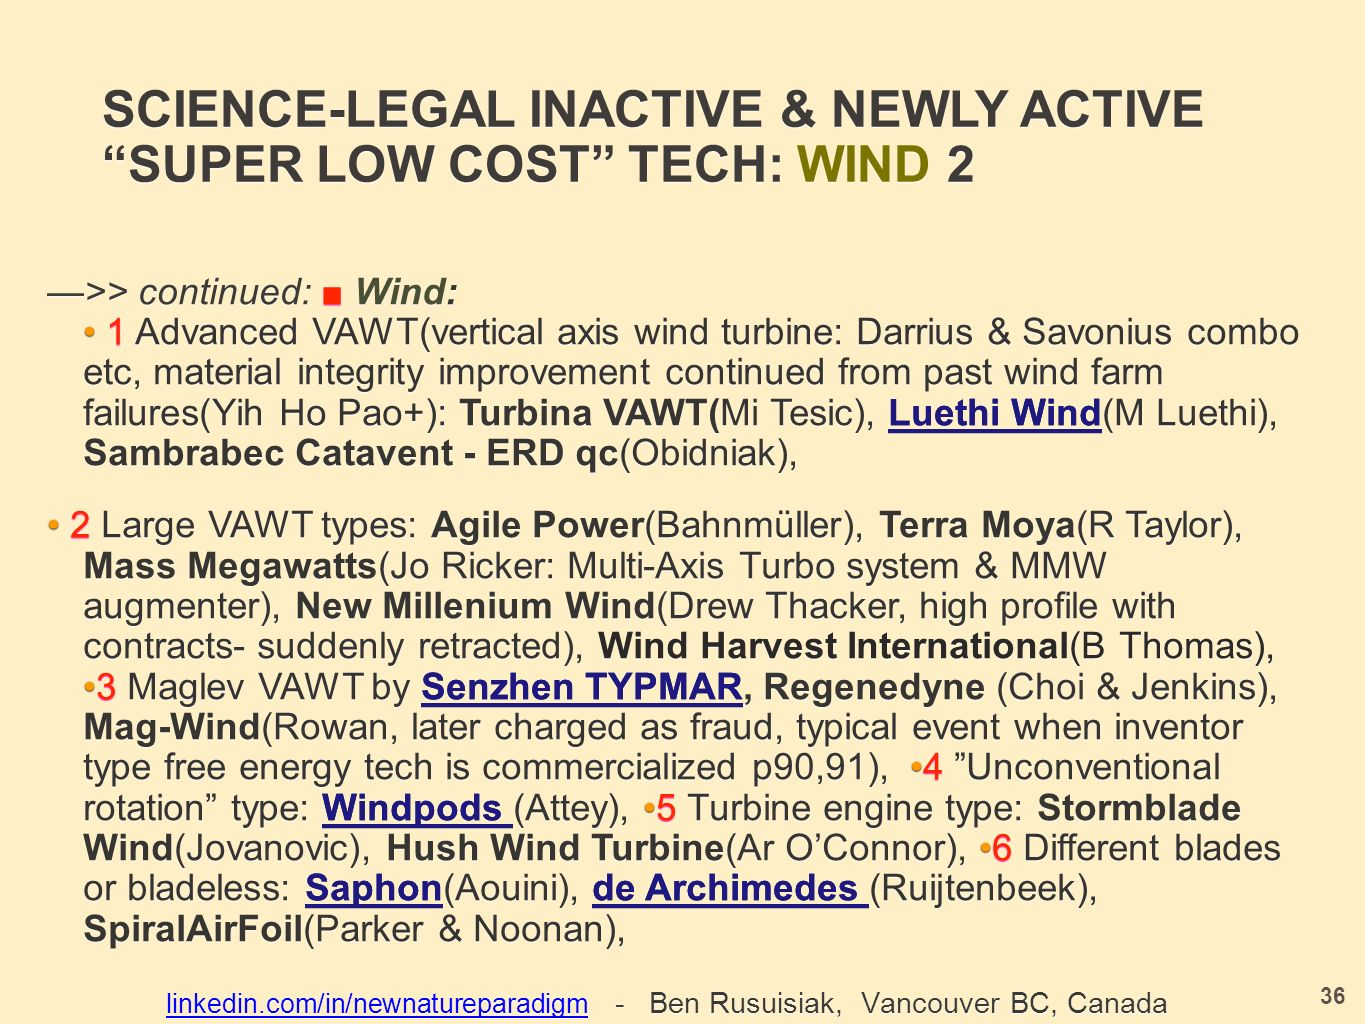 SCIENCE-LEGAL INACTIVE & NEWLY ACTIVE SUPER LOW COST TECH: WIND 2 —>> continued: ■ Wind: 1 Advanced VAWT(vertical axis wind turbine: Darrius & Savonius combo etc, material integrity improvement continued from past wind farm failures(Yih Ho Pao+): Turbina VAWT(Mi Tesic), Luethi Wind (M Luethi), Sambrabec Catavent - ERD qc(Obidniak), —>> continued: ■ Wind: 1 Advanced VAWT(vertical axis wind turbine: Darrius & Savonius combo etc, material integrity improvement continued from past wind farm failures(Yih Ho Pao+): Turbina VAWT(Mi Tesic), Luethi Wind(M Luethi), Sambrabec Catavent - ERD qc(Obidniak), 2 Large VAWT types: Agile Power(Bahnmüller), Terra Moya(R Taylor), Mass Megawatts(Jo Ricker: Multi-Axis Turbo system & MMW augmenter), New Millenium Wind(Drew Thacker, high profile with contracts- suddenly retracted), Wind Harvest International(B Thomas), 3 Maglev VAWT by Senzhen TYPMAR, Regenedyne (Choi & Jenkins), Mag-Wind(Rowan, later charged as fraud, typical event when inventor type free energy tech is commercialized p90,91), 4 Unconventional rotation type: Windpods (Attey), 5 Turbine engine type: Stormblade Wind(Jovanovic), Hush Wind Turbine(Ar O'Connor), 6 Different blades or bladeless: Saphon (Aouini), de Archimedes (Ruijtenbeek), SpiralAirFoil(Parker & Noonan), 2 Large VAWT types: Agile Power(Bahnmüller), Terra Moya(R Taylor), Mass Megawatts(Jo Ricker: Multi-Axis Turbo system & MMW augmenter), New Millenium Wind(Drew Thacker, high profile with contracts- suddenly retracted), Wind Harvest International(B Thomas),3 Maglev VAWT by Senzhen TYPMAR, Regenedyne (Choi & Jenkins), Mag-Wind(Rowan, later charged as fraud, typical event when inventor type free energy tech is commercialized p90,91), 4 Unconventional rotation type: Windpods (Attey), 5 Turbine engine type: Stormblade Wind(Jovanovic), Hush Wind Turbine(Ar O'Connor), 6 Different blades or bladeless: Saphon(Aouini), de Archimedes (Ruijtenbeek), SpiralAirFoil(Parker & Noonan), 36 linkedin.com/in/newnatureparadigmlinkedin.com/in/newnatureparadigm - Ben Rusuisiak, Vancouver BC, Canada linkedin.com/in/newnatureparadigm